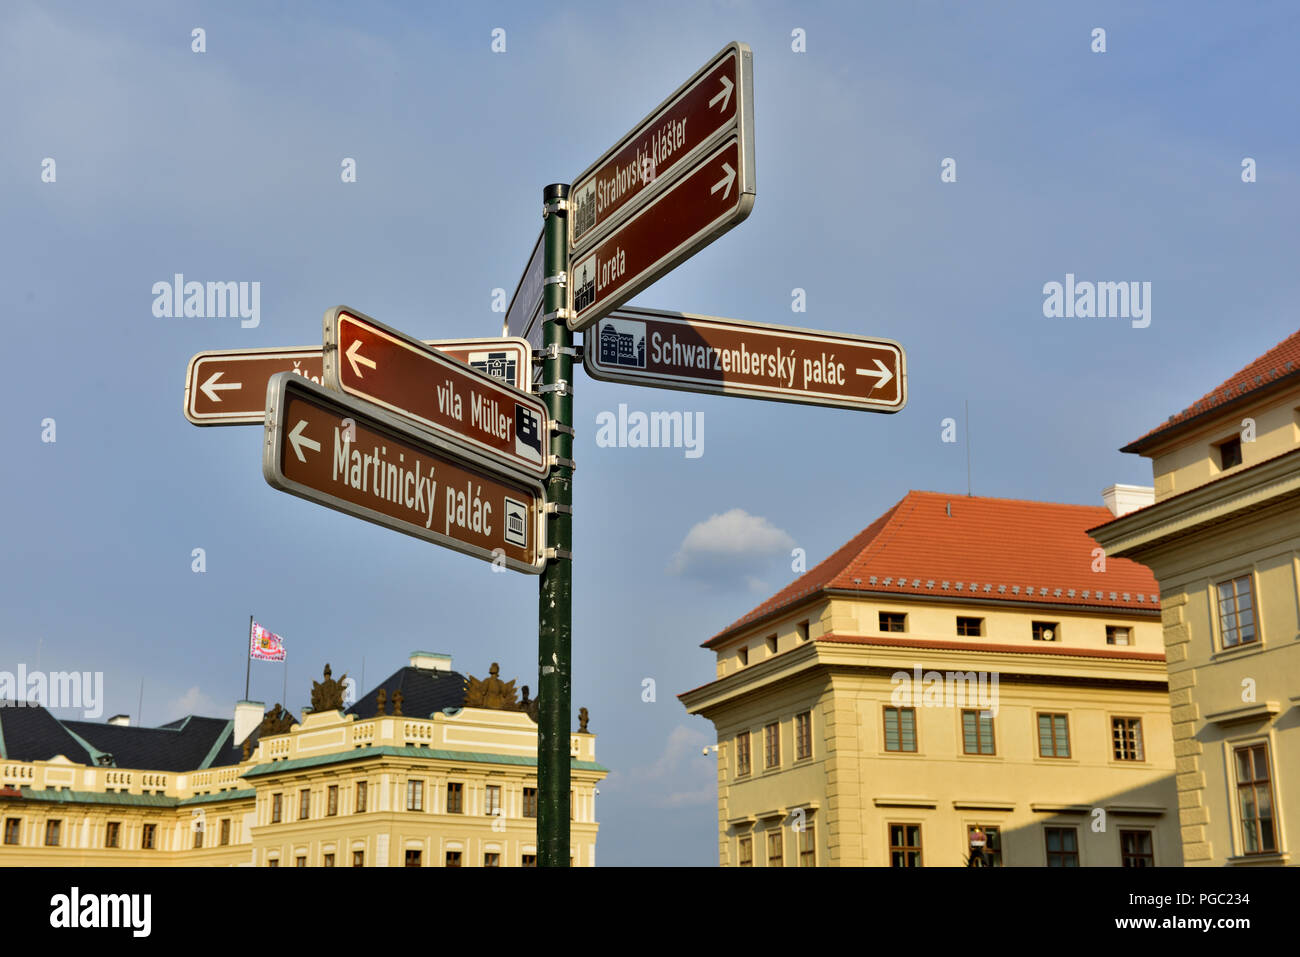 Sightseeing direction sign to points of interest Prague, Czech Republic - Stock Image